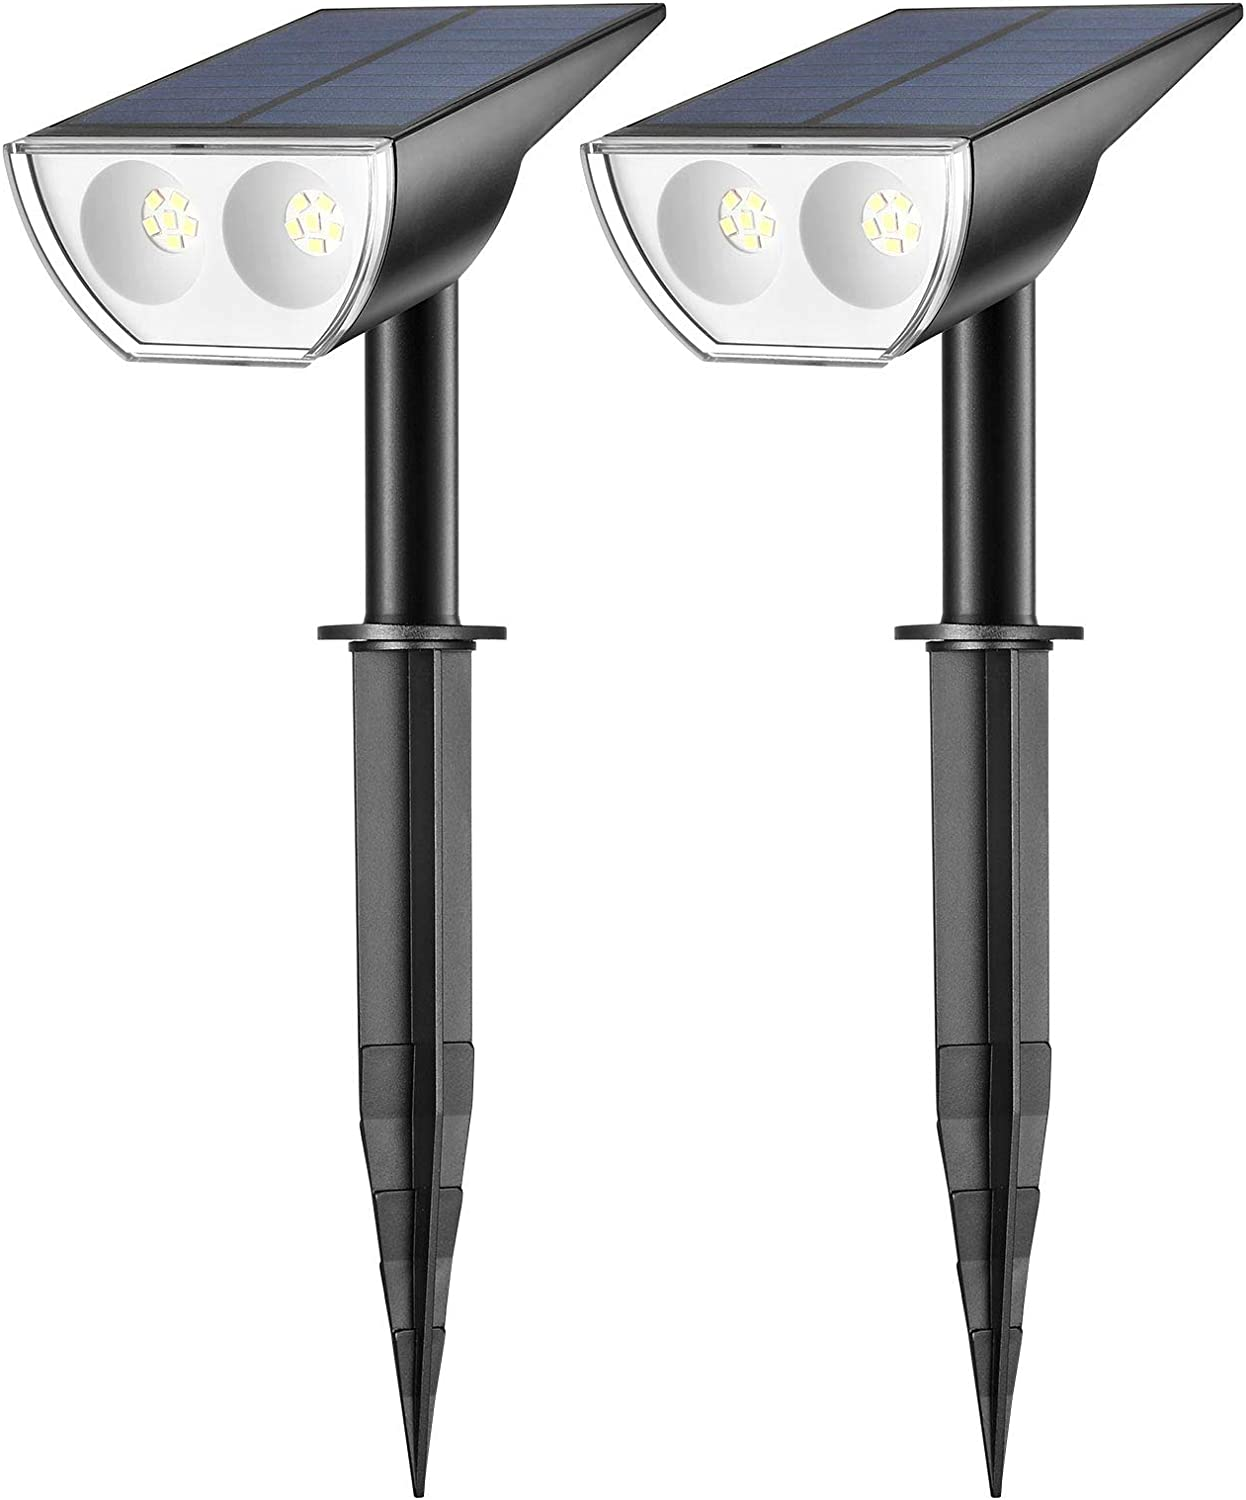 Consciot OC-GL-035B 12 LED Outdoor Compact Dusk-to-Dawn Solar Powered Landscape Spotlights, IP67 Waterproof 2-in-1 Decorative Lighting for Garden, Pathway, Patio, 2 Pack, Cool White